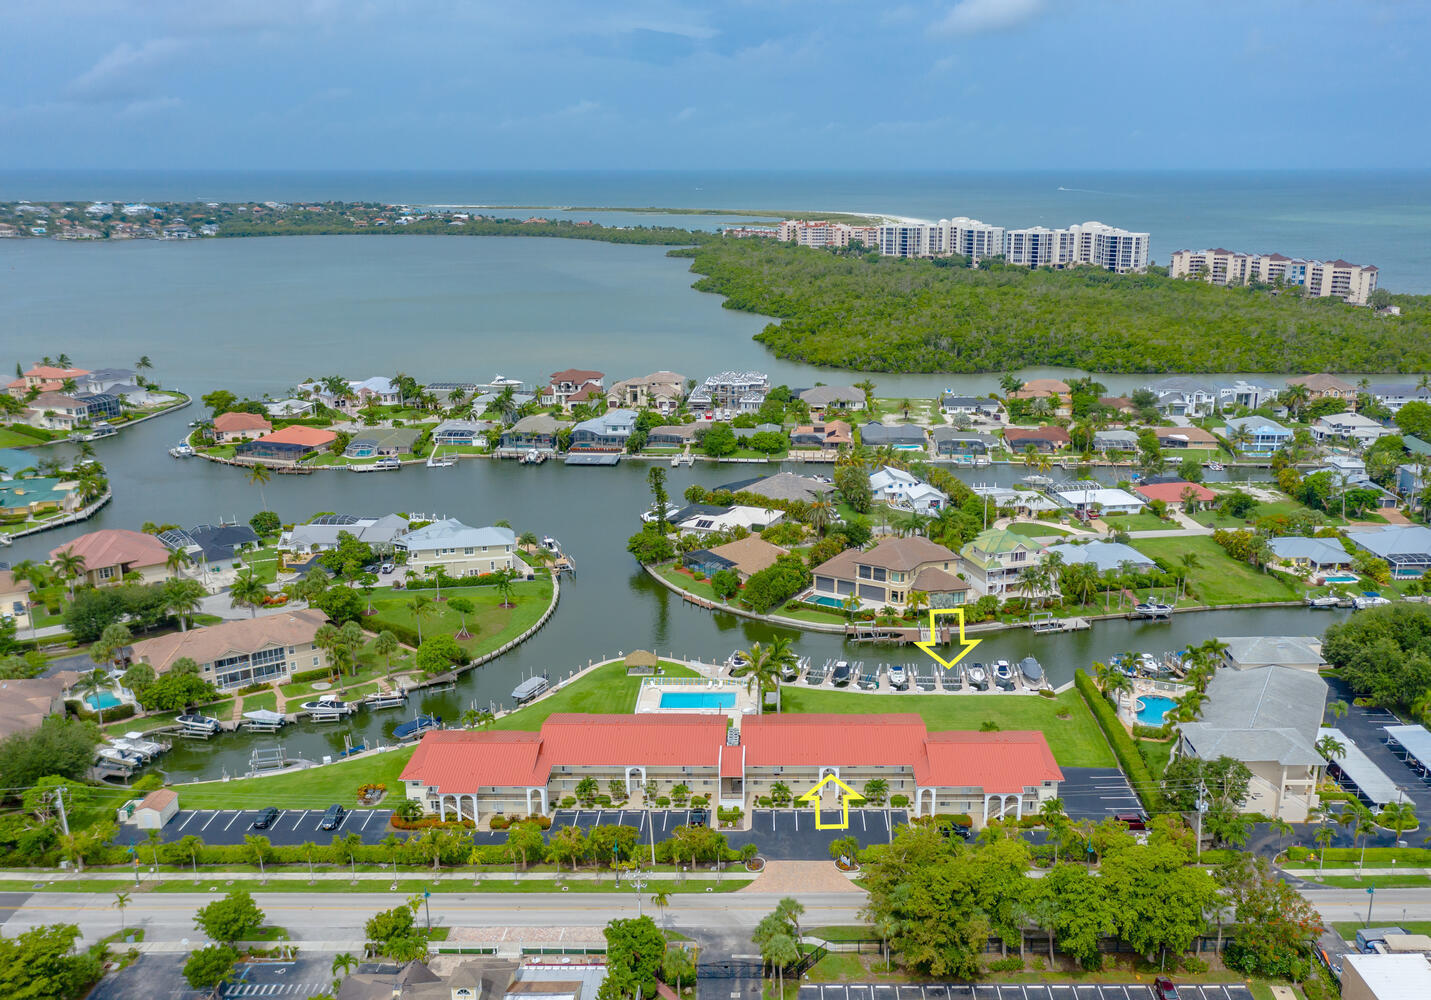 Enjoy long water views at this furnished Water Direct, 2 Bedroom, 2 Bathroom Olde Marco condo. This sale conveys with a DEEDED boat dock and lift, including: new pulleys, gem remote upgrade and new dock box! Situated on the second floor this property boasts of: an open floor plan with stunning water views, water views off the master bedroom, laundry in the unit, and impact glass sliders on all windows excluding the slider. Sit back on your private screened lanai and enjoy DAILY Marco Island sunsets without having to leave your property! This community is great for the avid boater. Property upgrades include: NEW HVAC 2020, reverse osmosis water filter system, new blinds on all windows, new ceiling fans, and more. Enjoy the new roof and exterior paint from2019 and new Pool Furniture purchased in 2020. You will surely love this smaller community in the Historical Old Marco area of the island. It has beautiful grounds and a very inviting pool. Enjoy paradise living at its best!